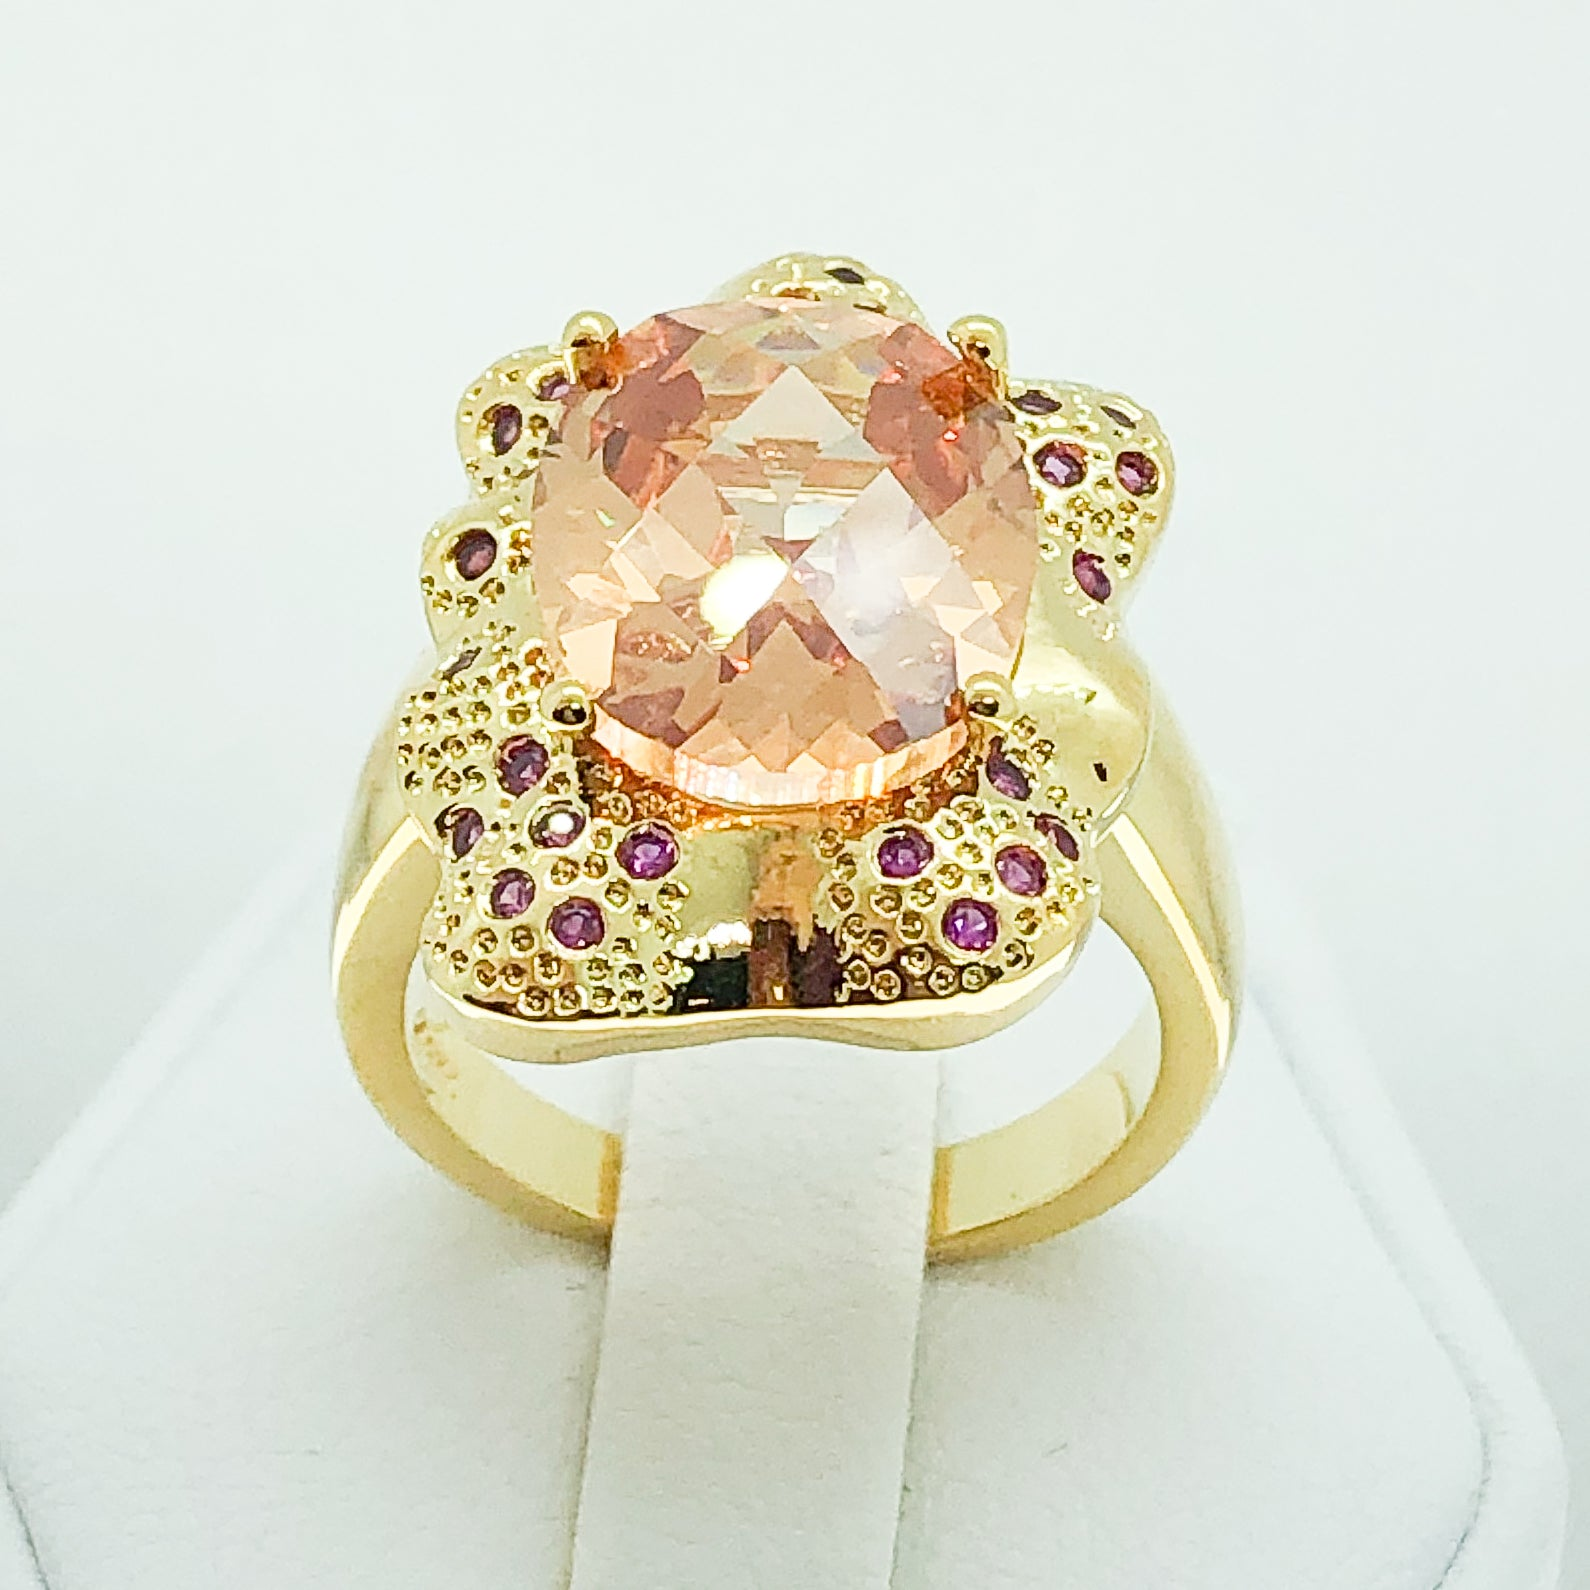 ID:R3866 Women Jewelry 18K Yellow Gold GF Big Orange Crystal With Accent Cocktail Ring